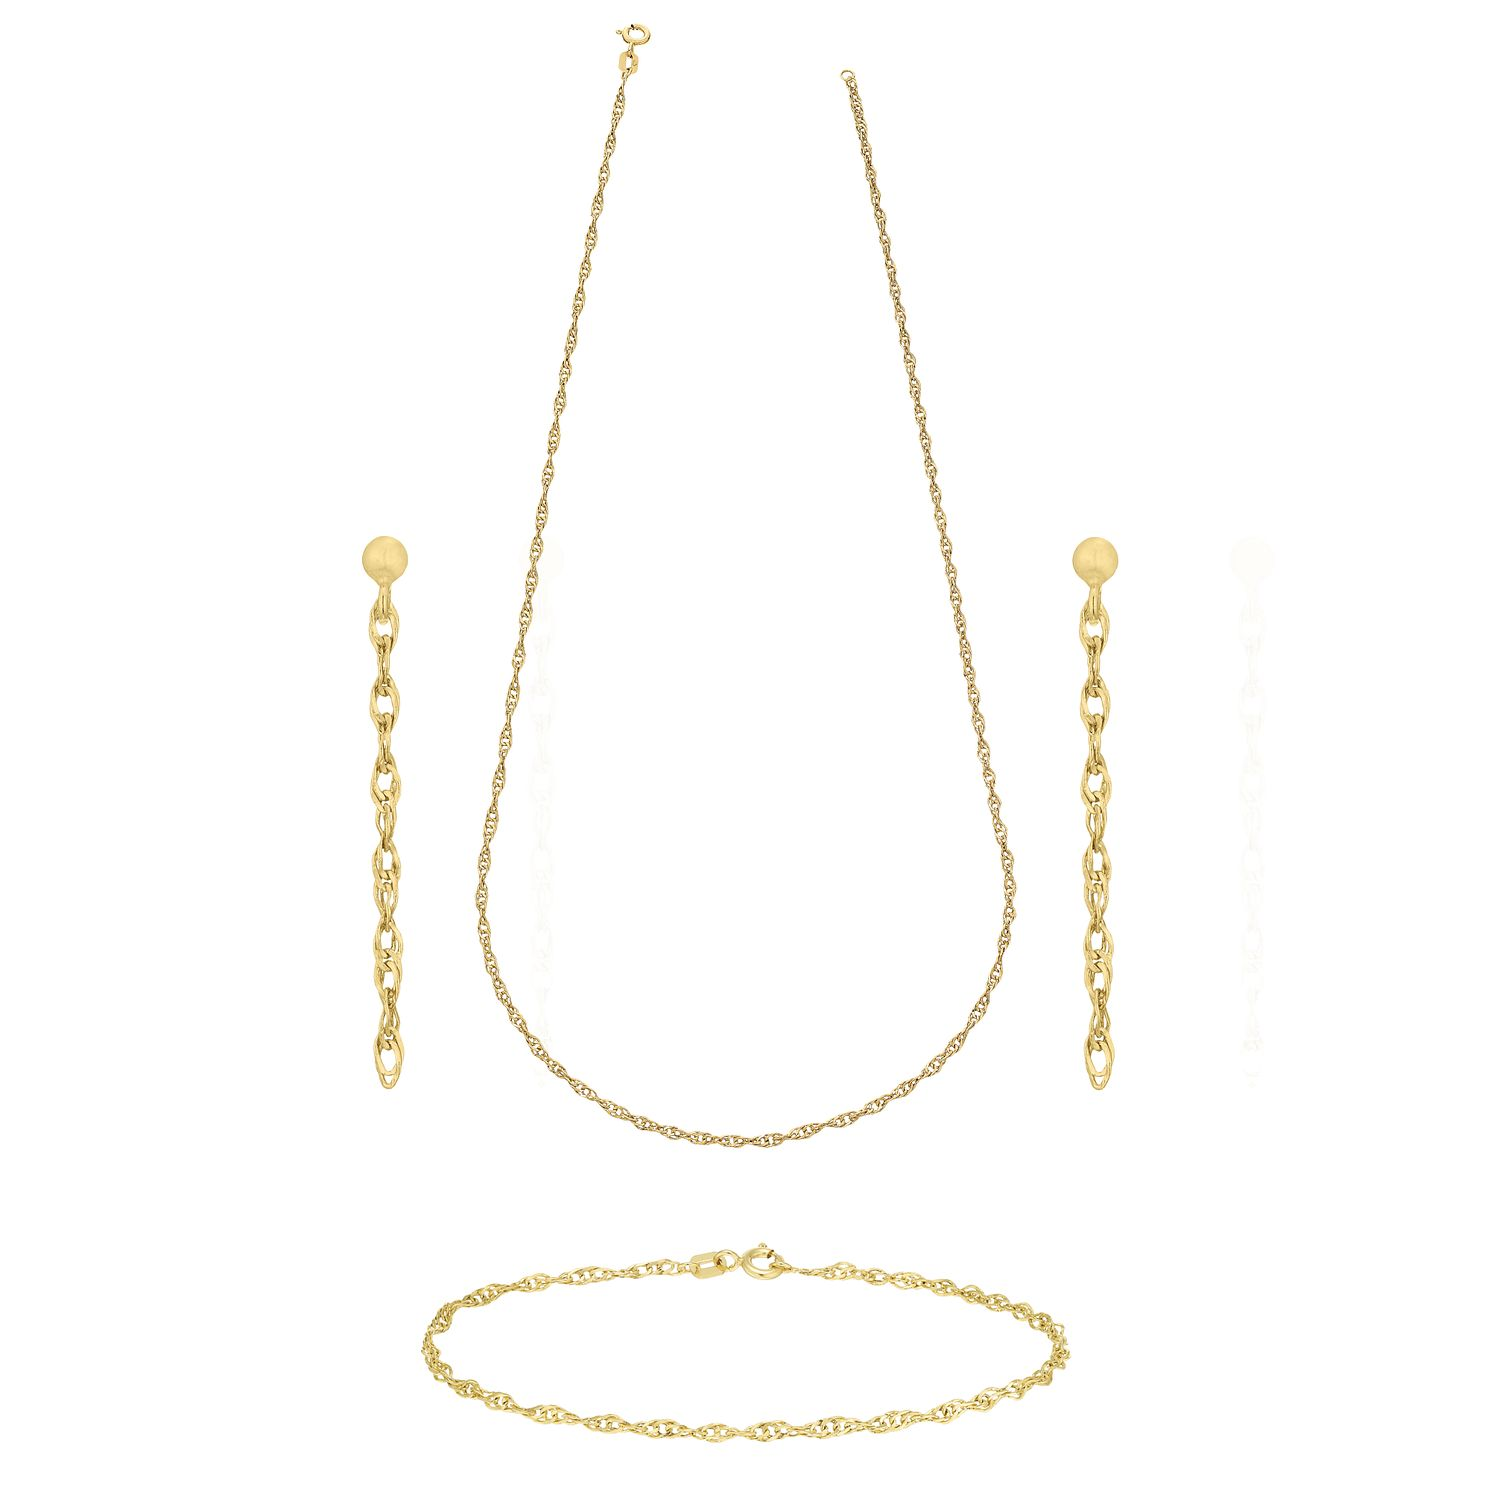 9ct Gold Fancy Singapore Necklace, Bracelet & Drop Earrings - Product number 5142059